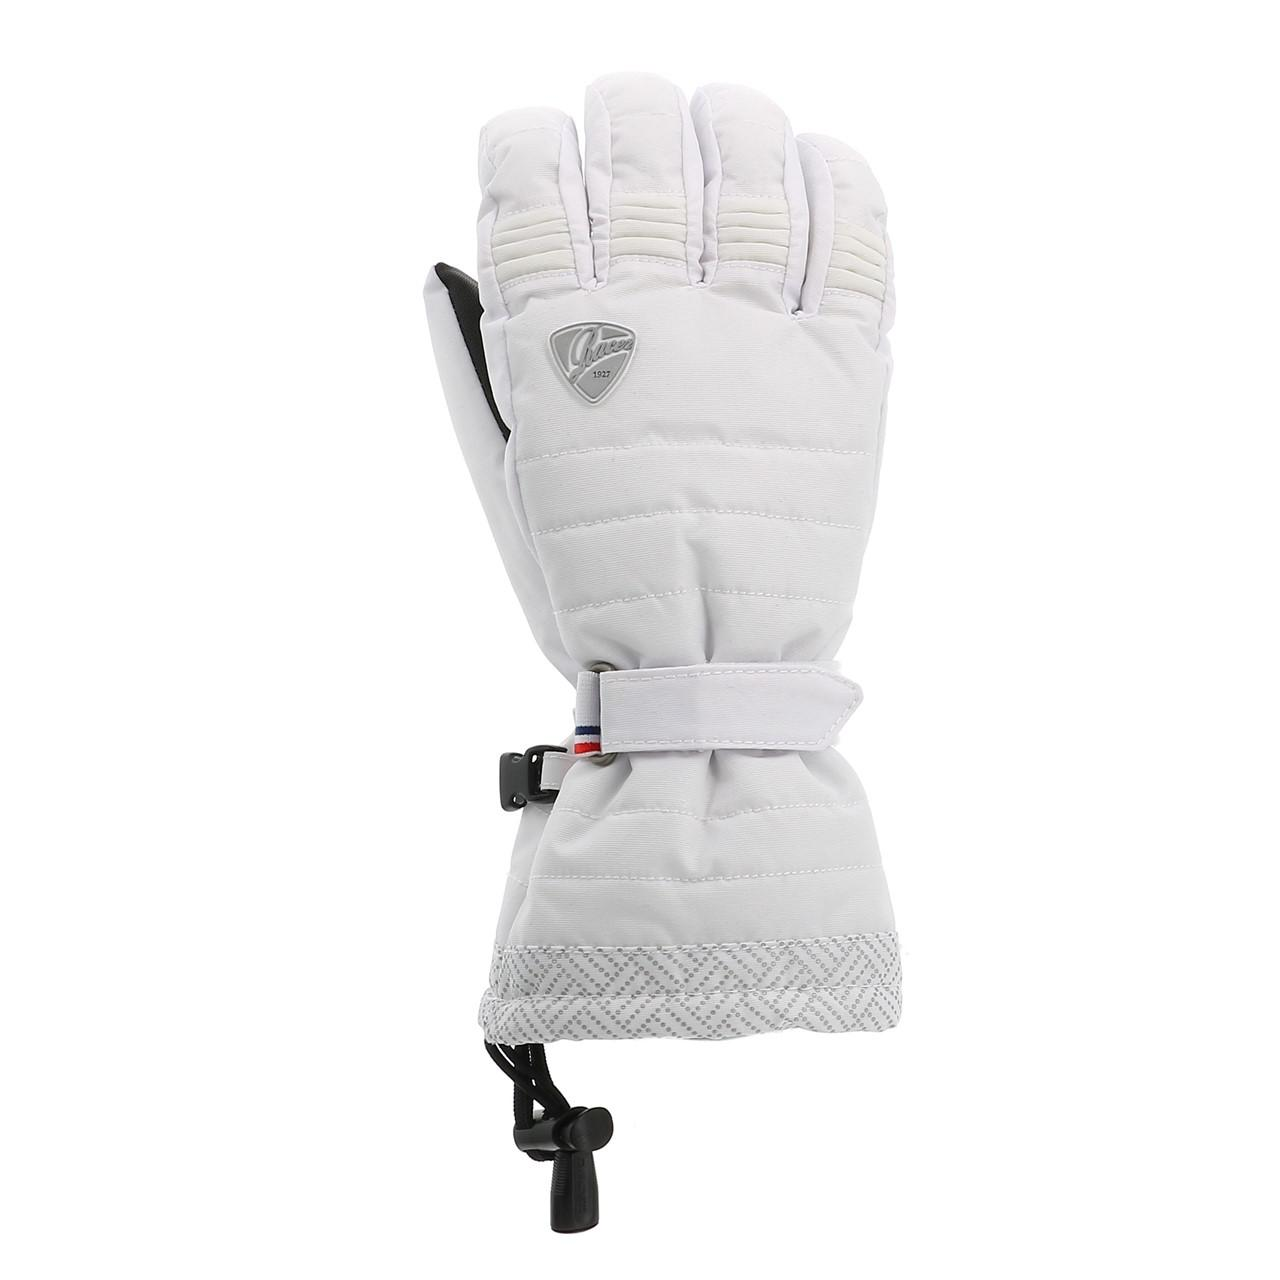 Ski-Gloves-Racer-Aloma-3-White-Gloves-Ski-L-White-15709-New